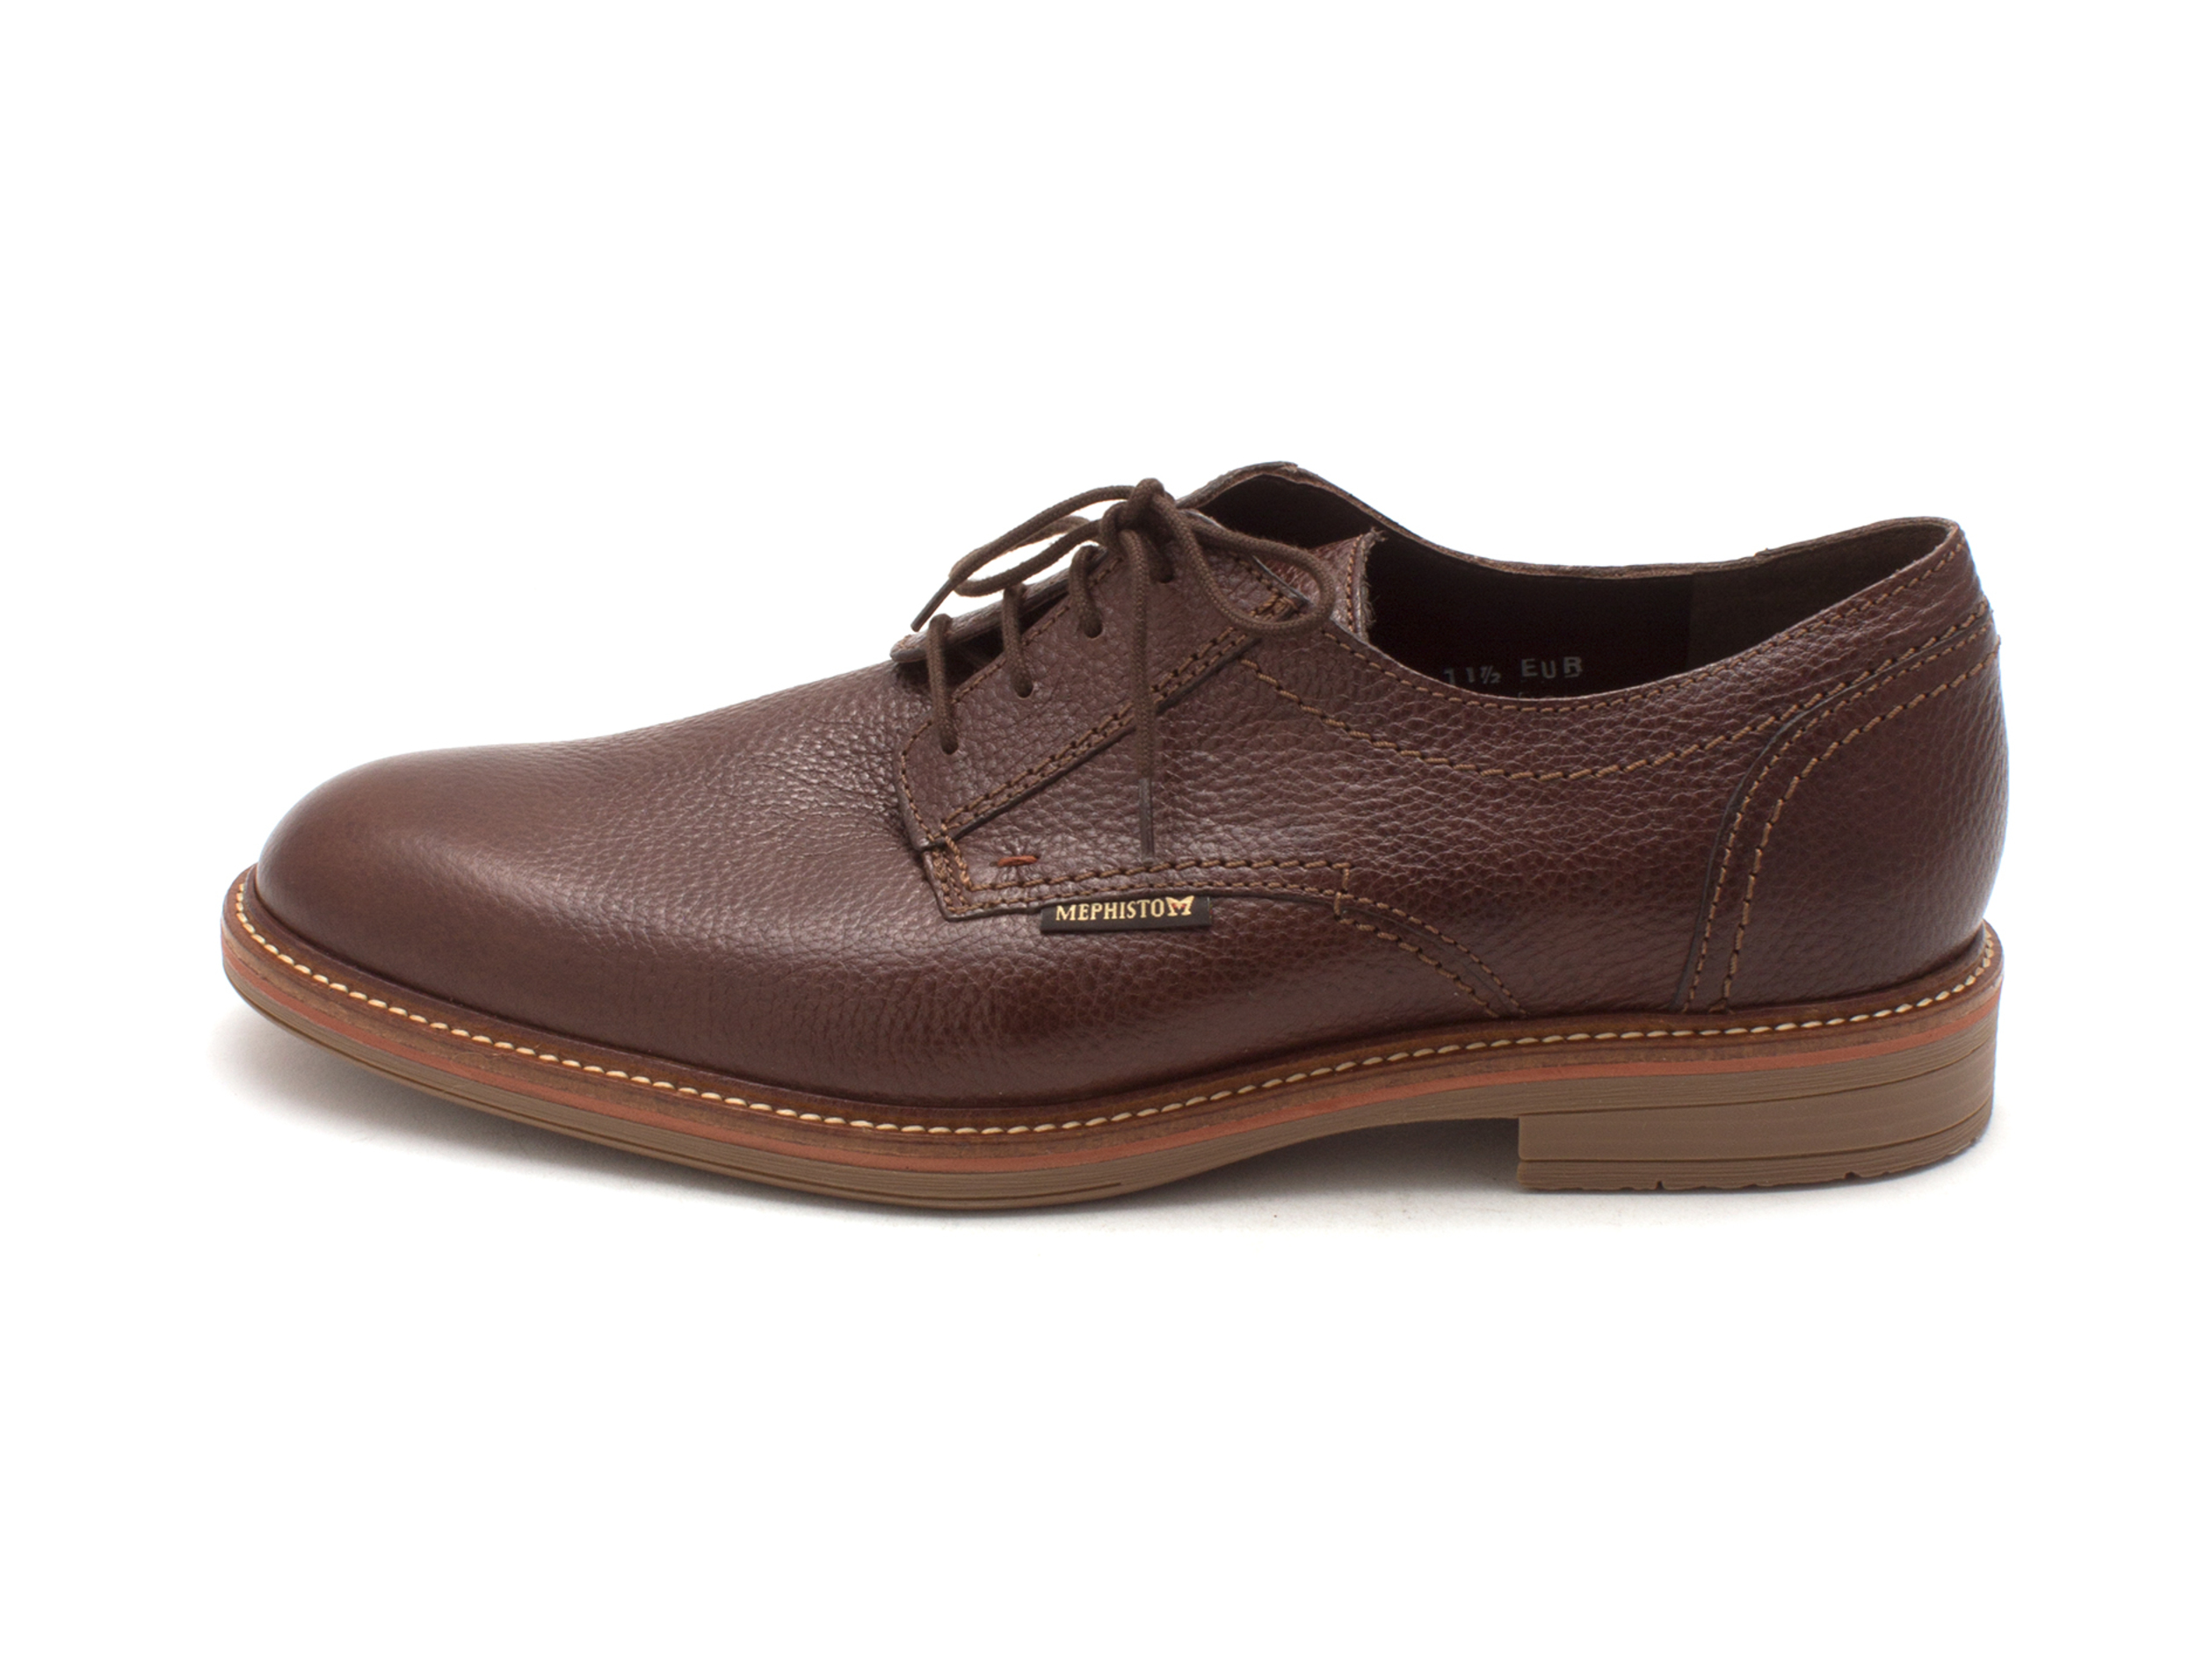 Mephisto Mens Waino Leather Lace Up Dress Oxfords by Mephisto